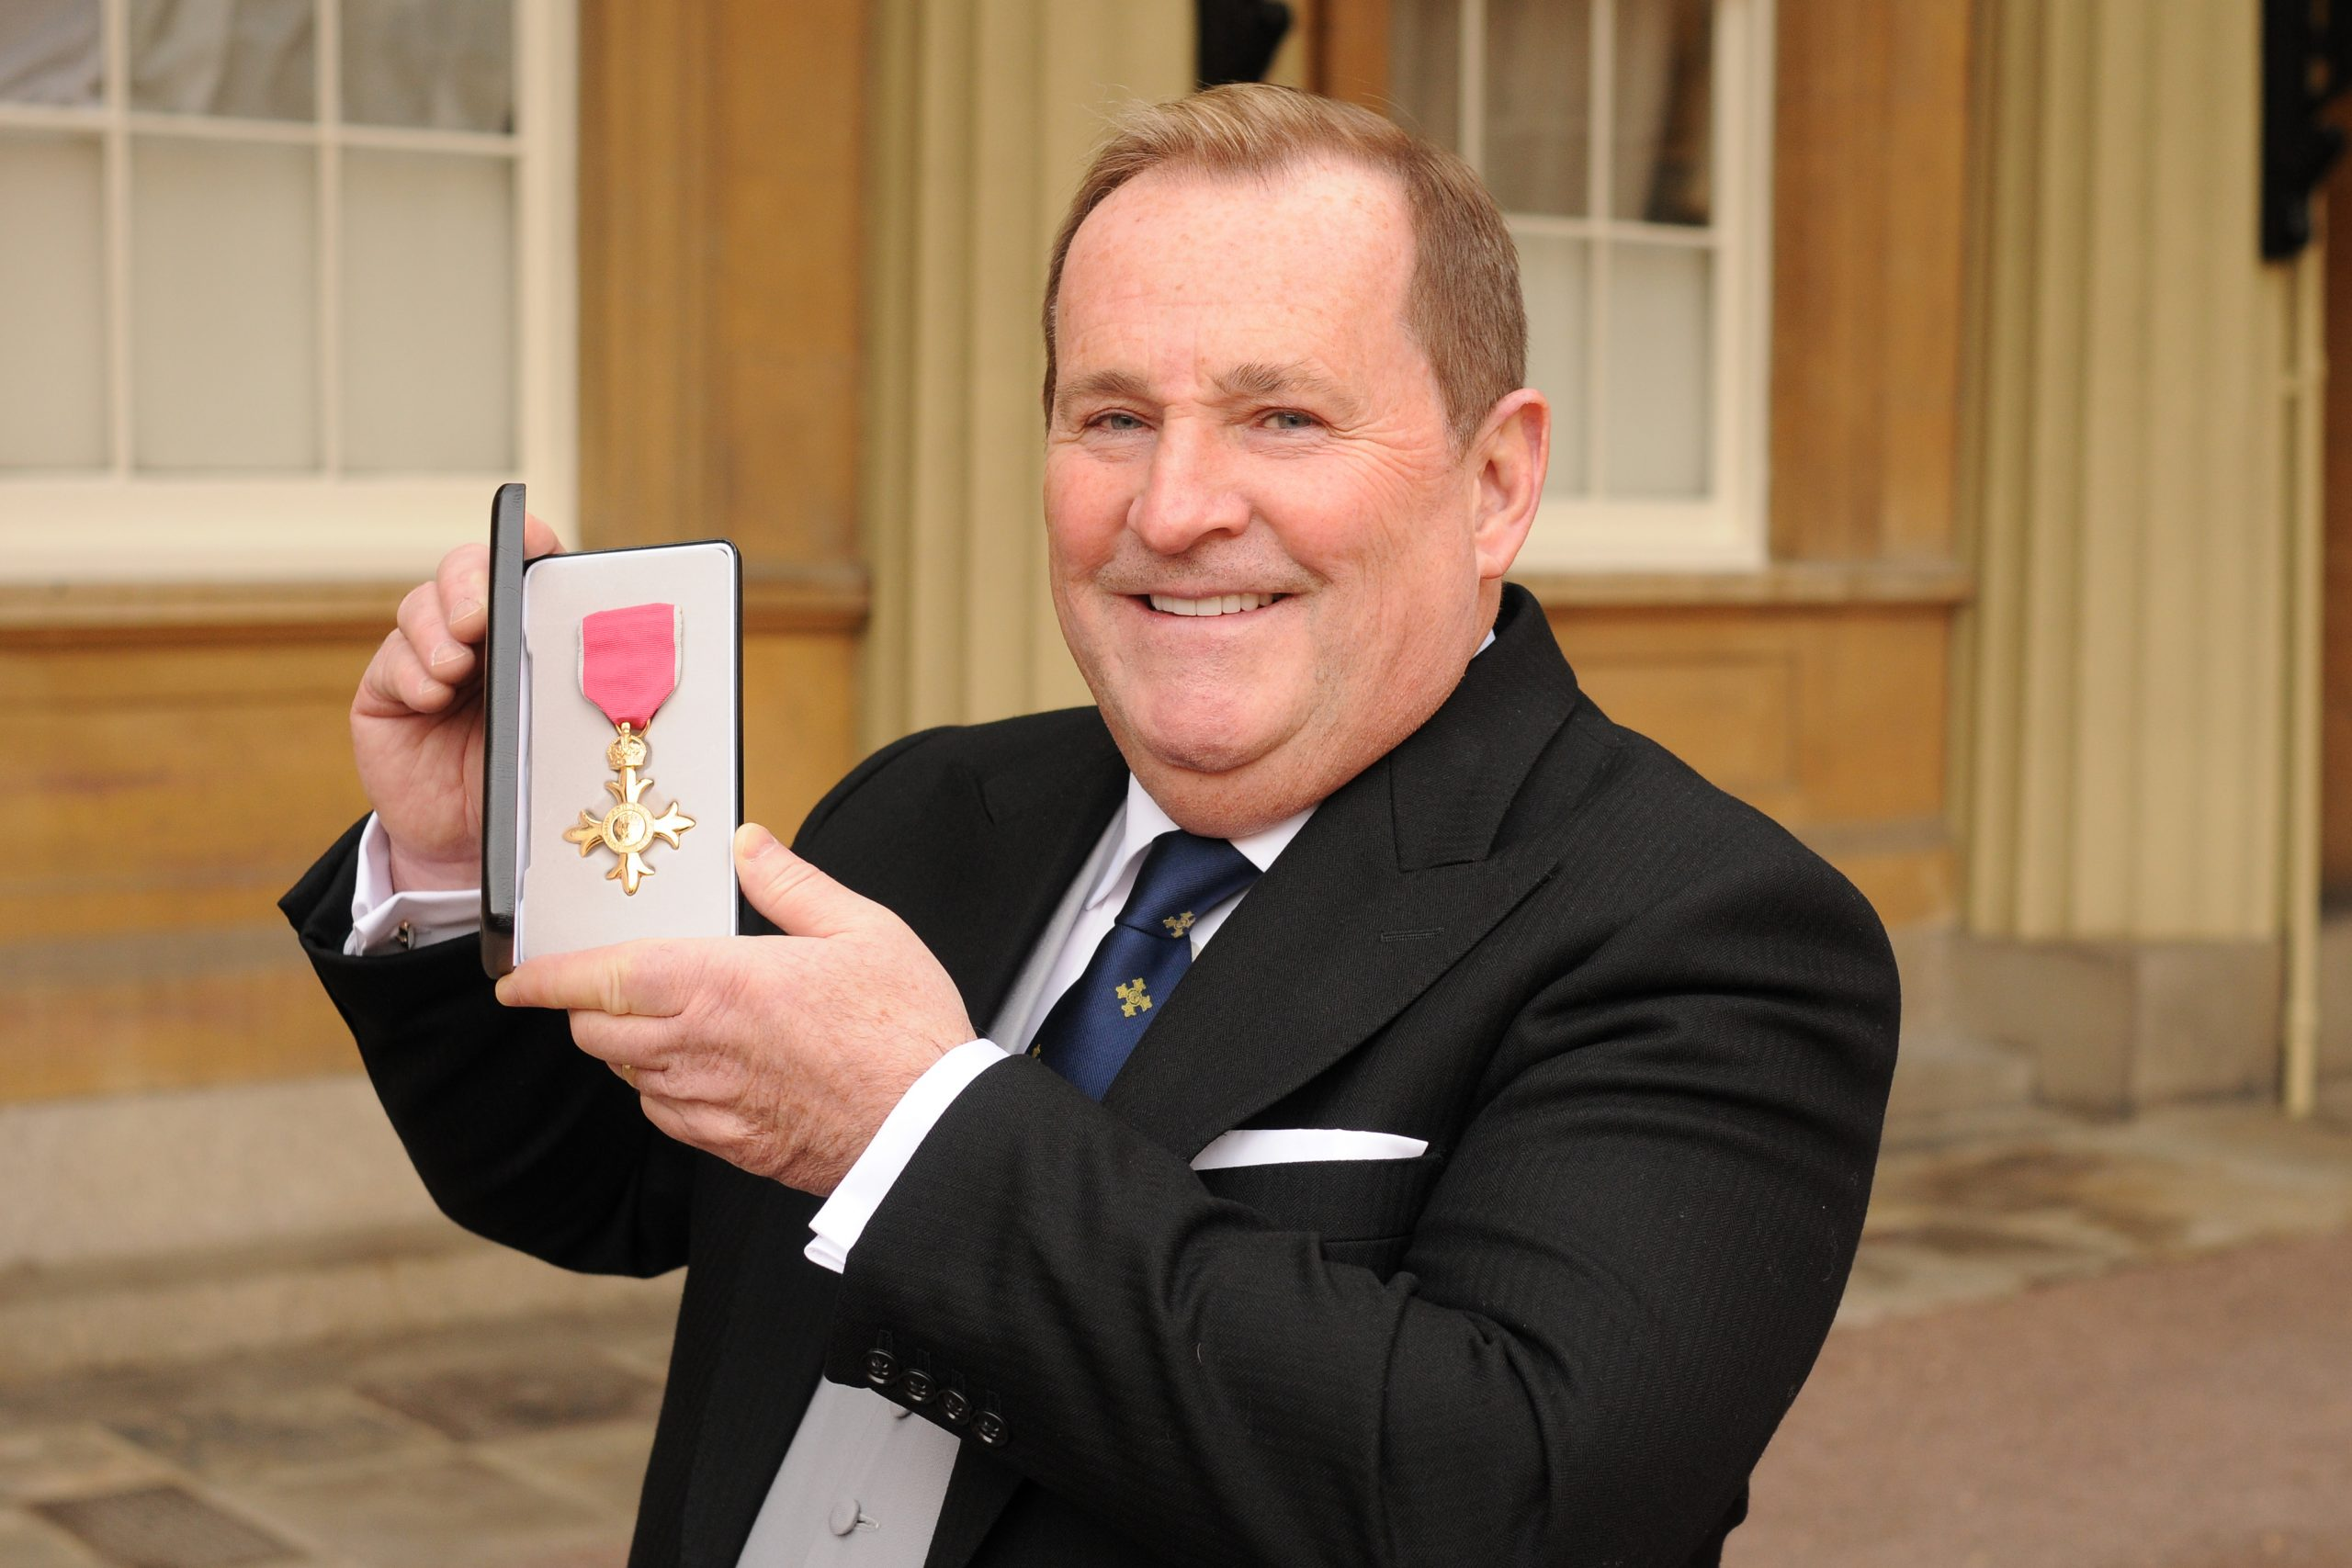 Bell Group Chairman awarded OBE at Buckingham Palace